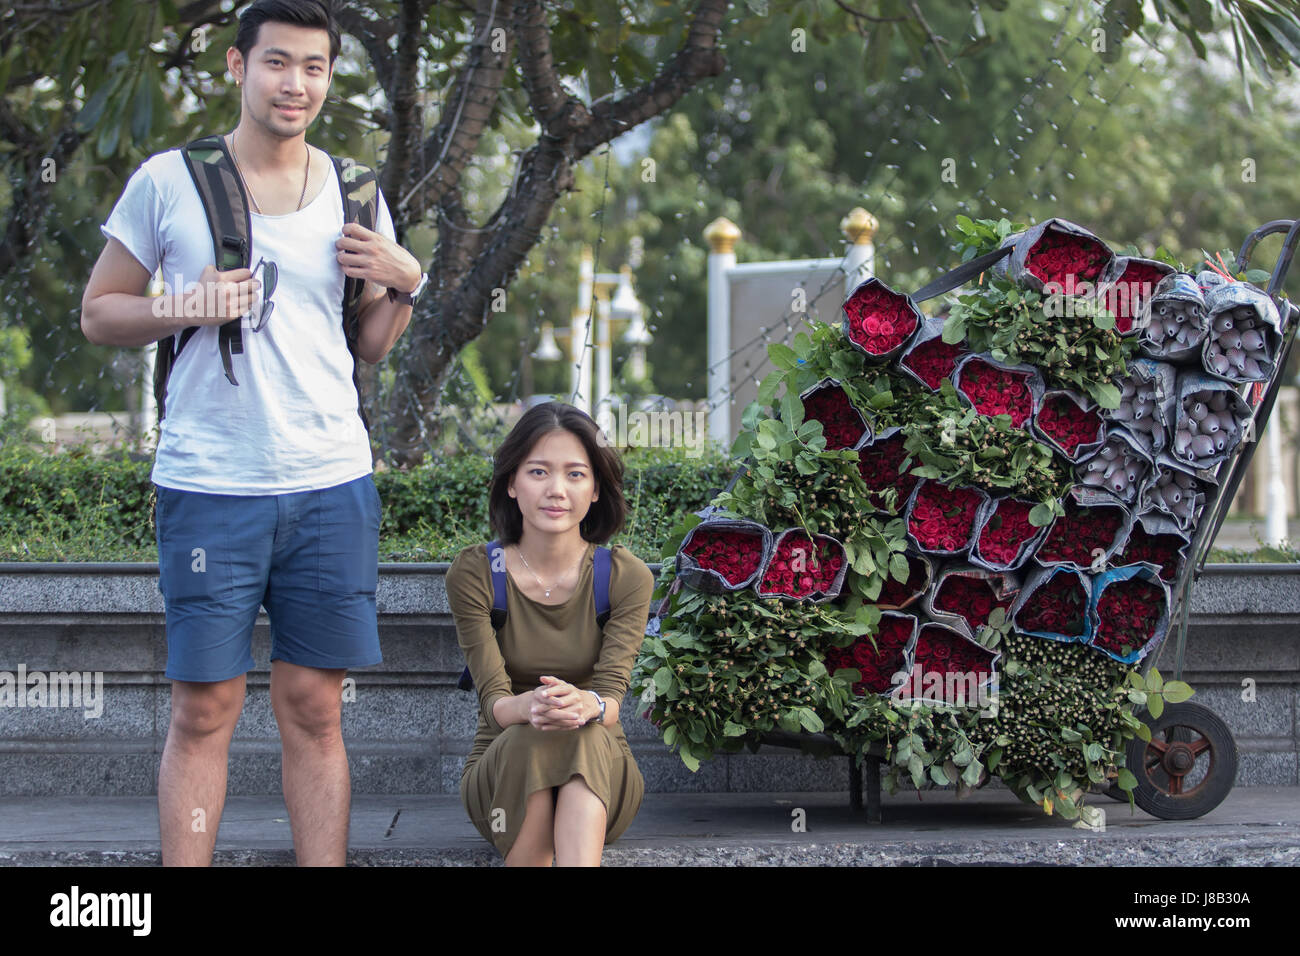 portrait couples of younger asian traveling man and woman sitting at road side beside red roses flower bouquet - Stock Image